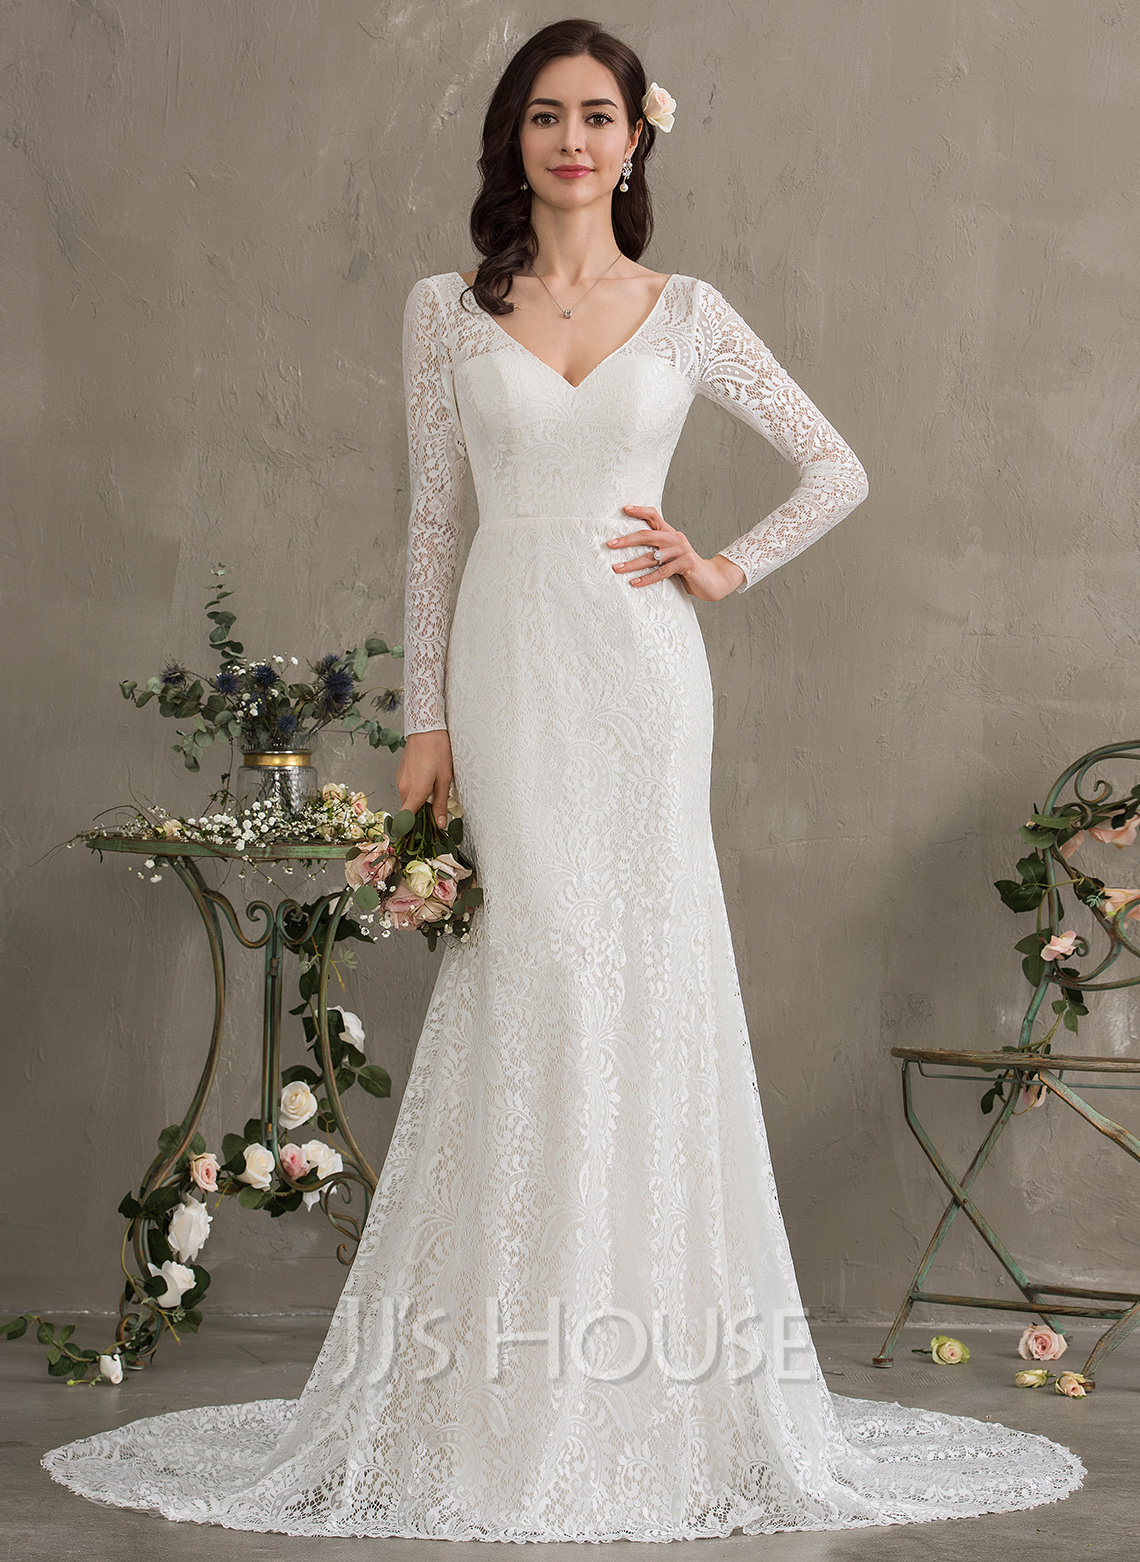 765dc8142066 Trumpet/Mermaid V-neck Court Train Lace Wedding Dress (002186368 ...